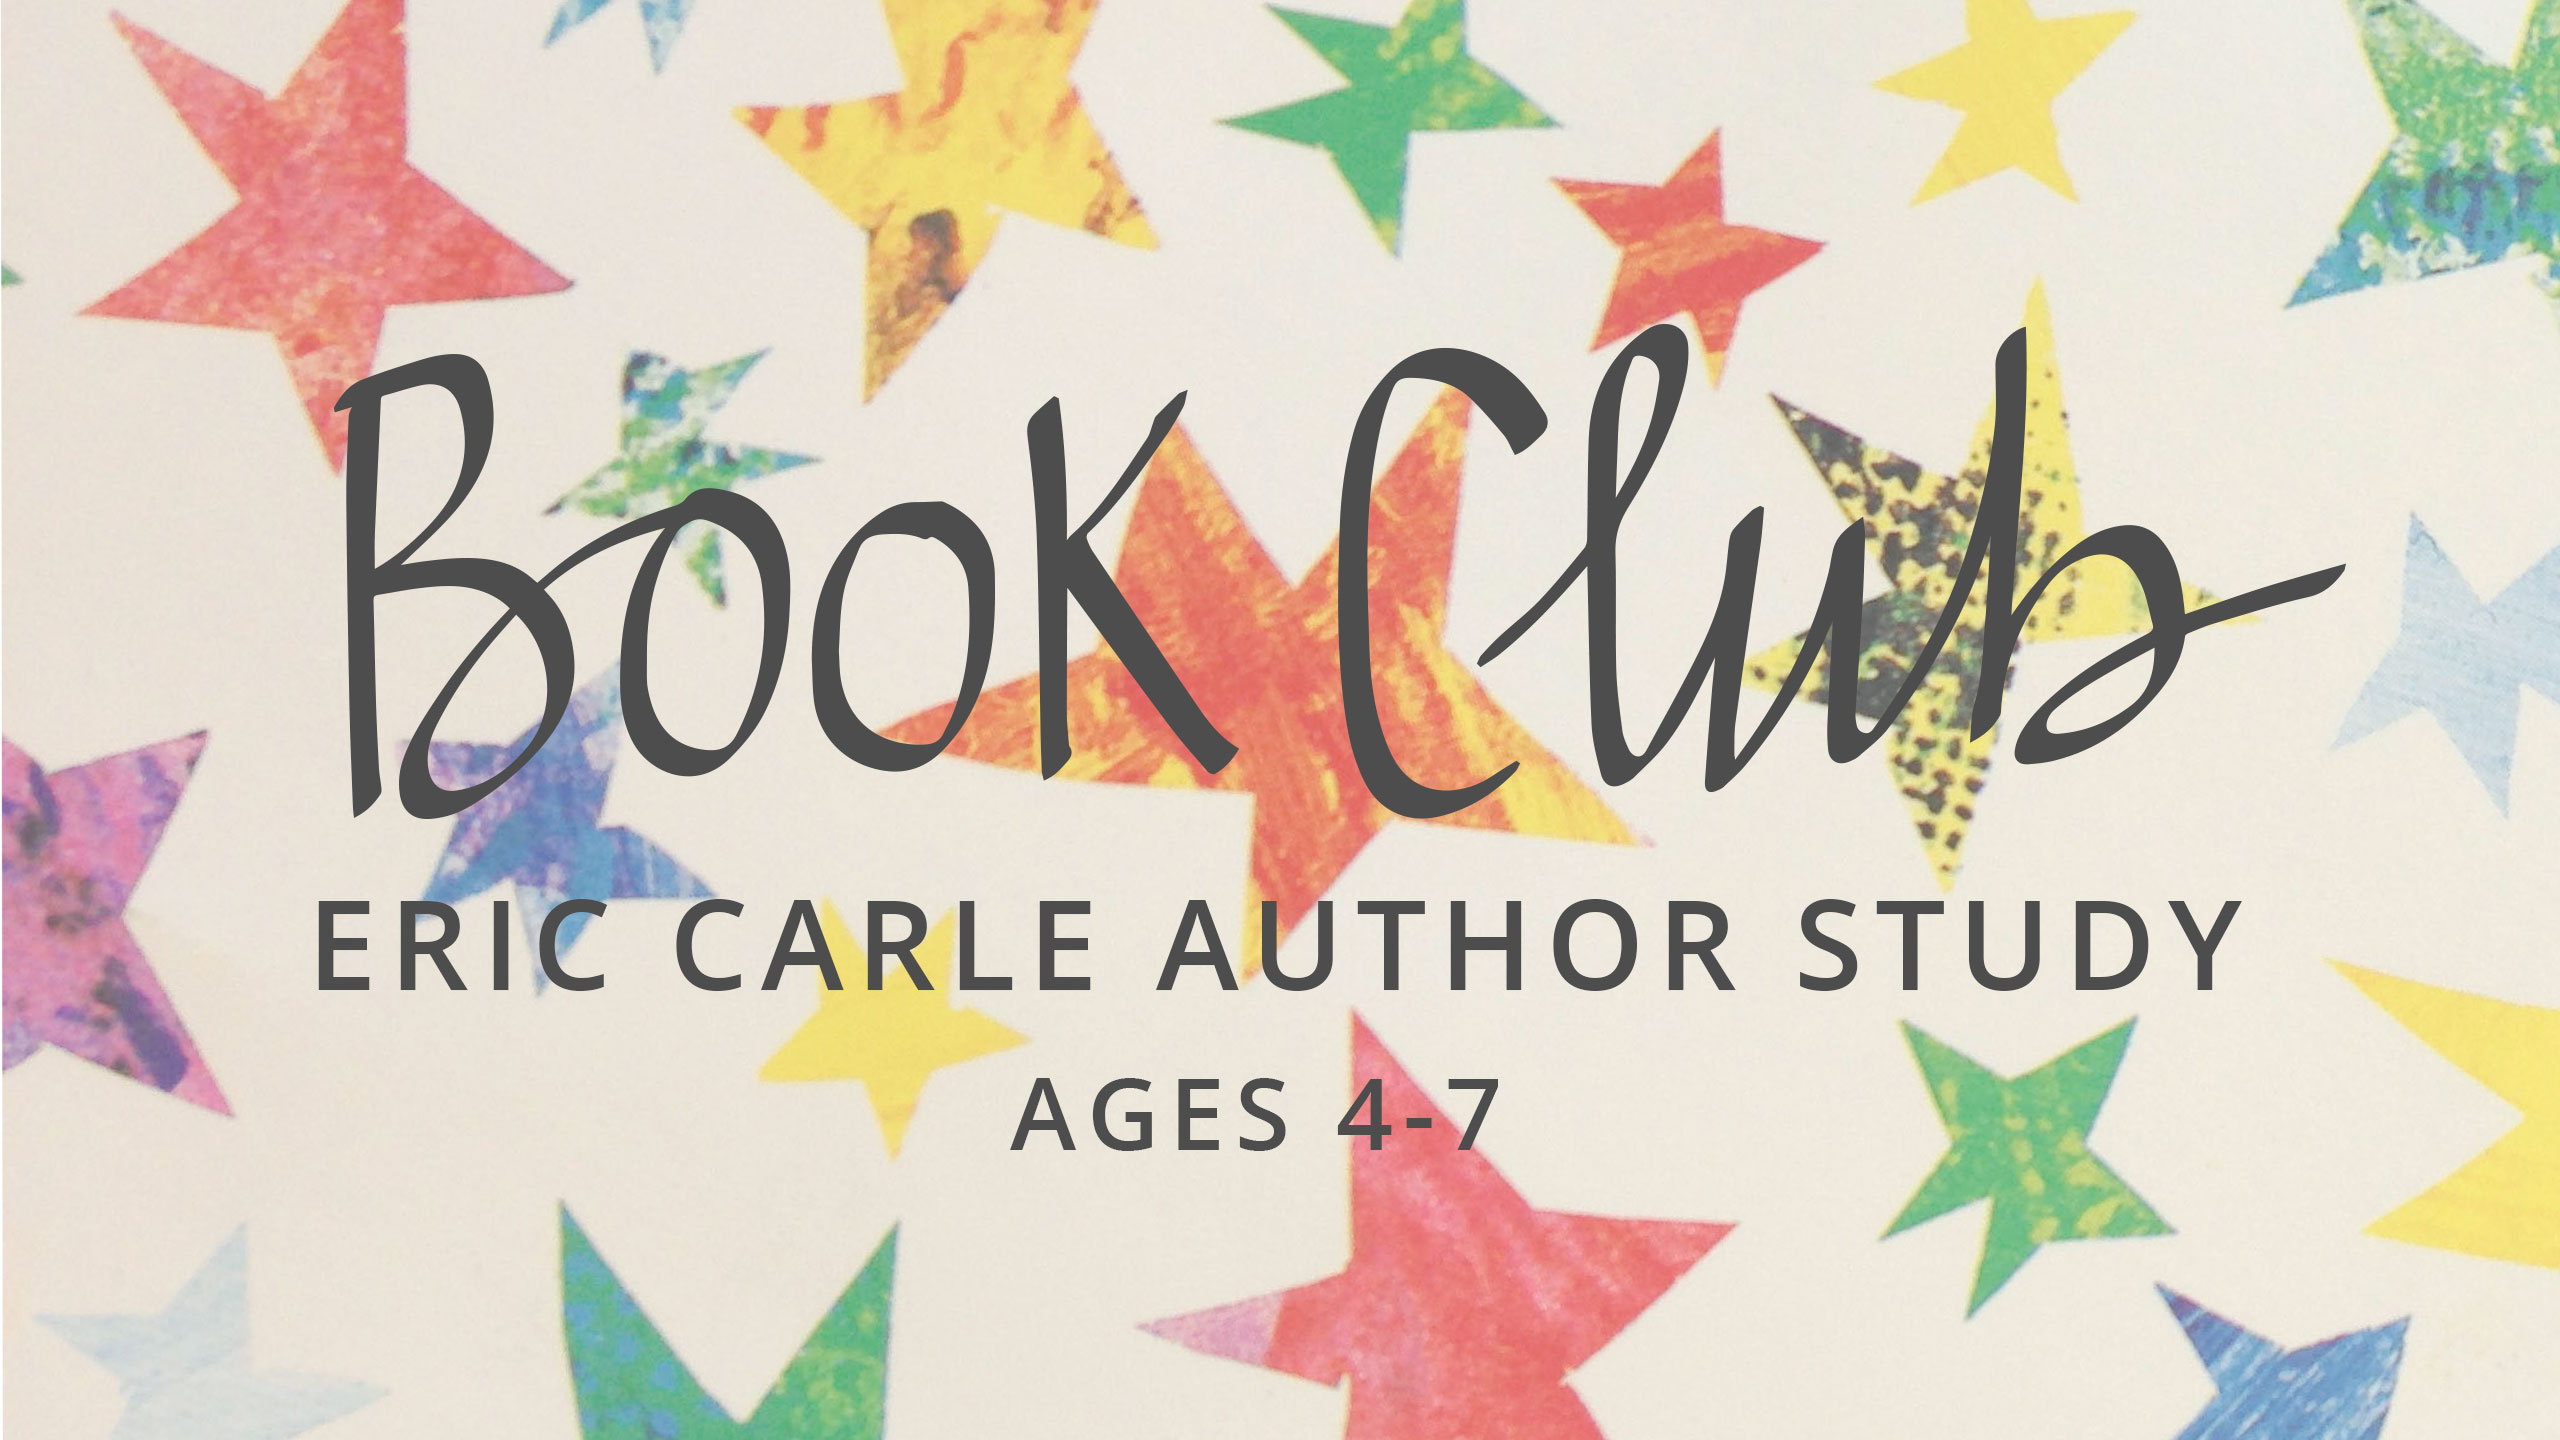 BOOK CLUB: ERIC CARLE AUTHOR STUDY